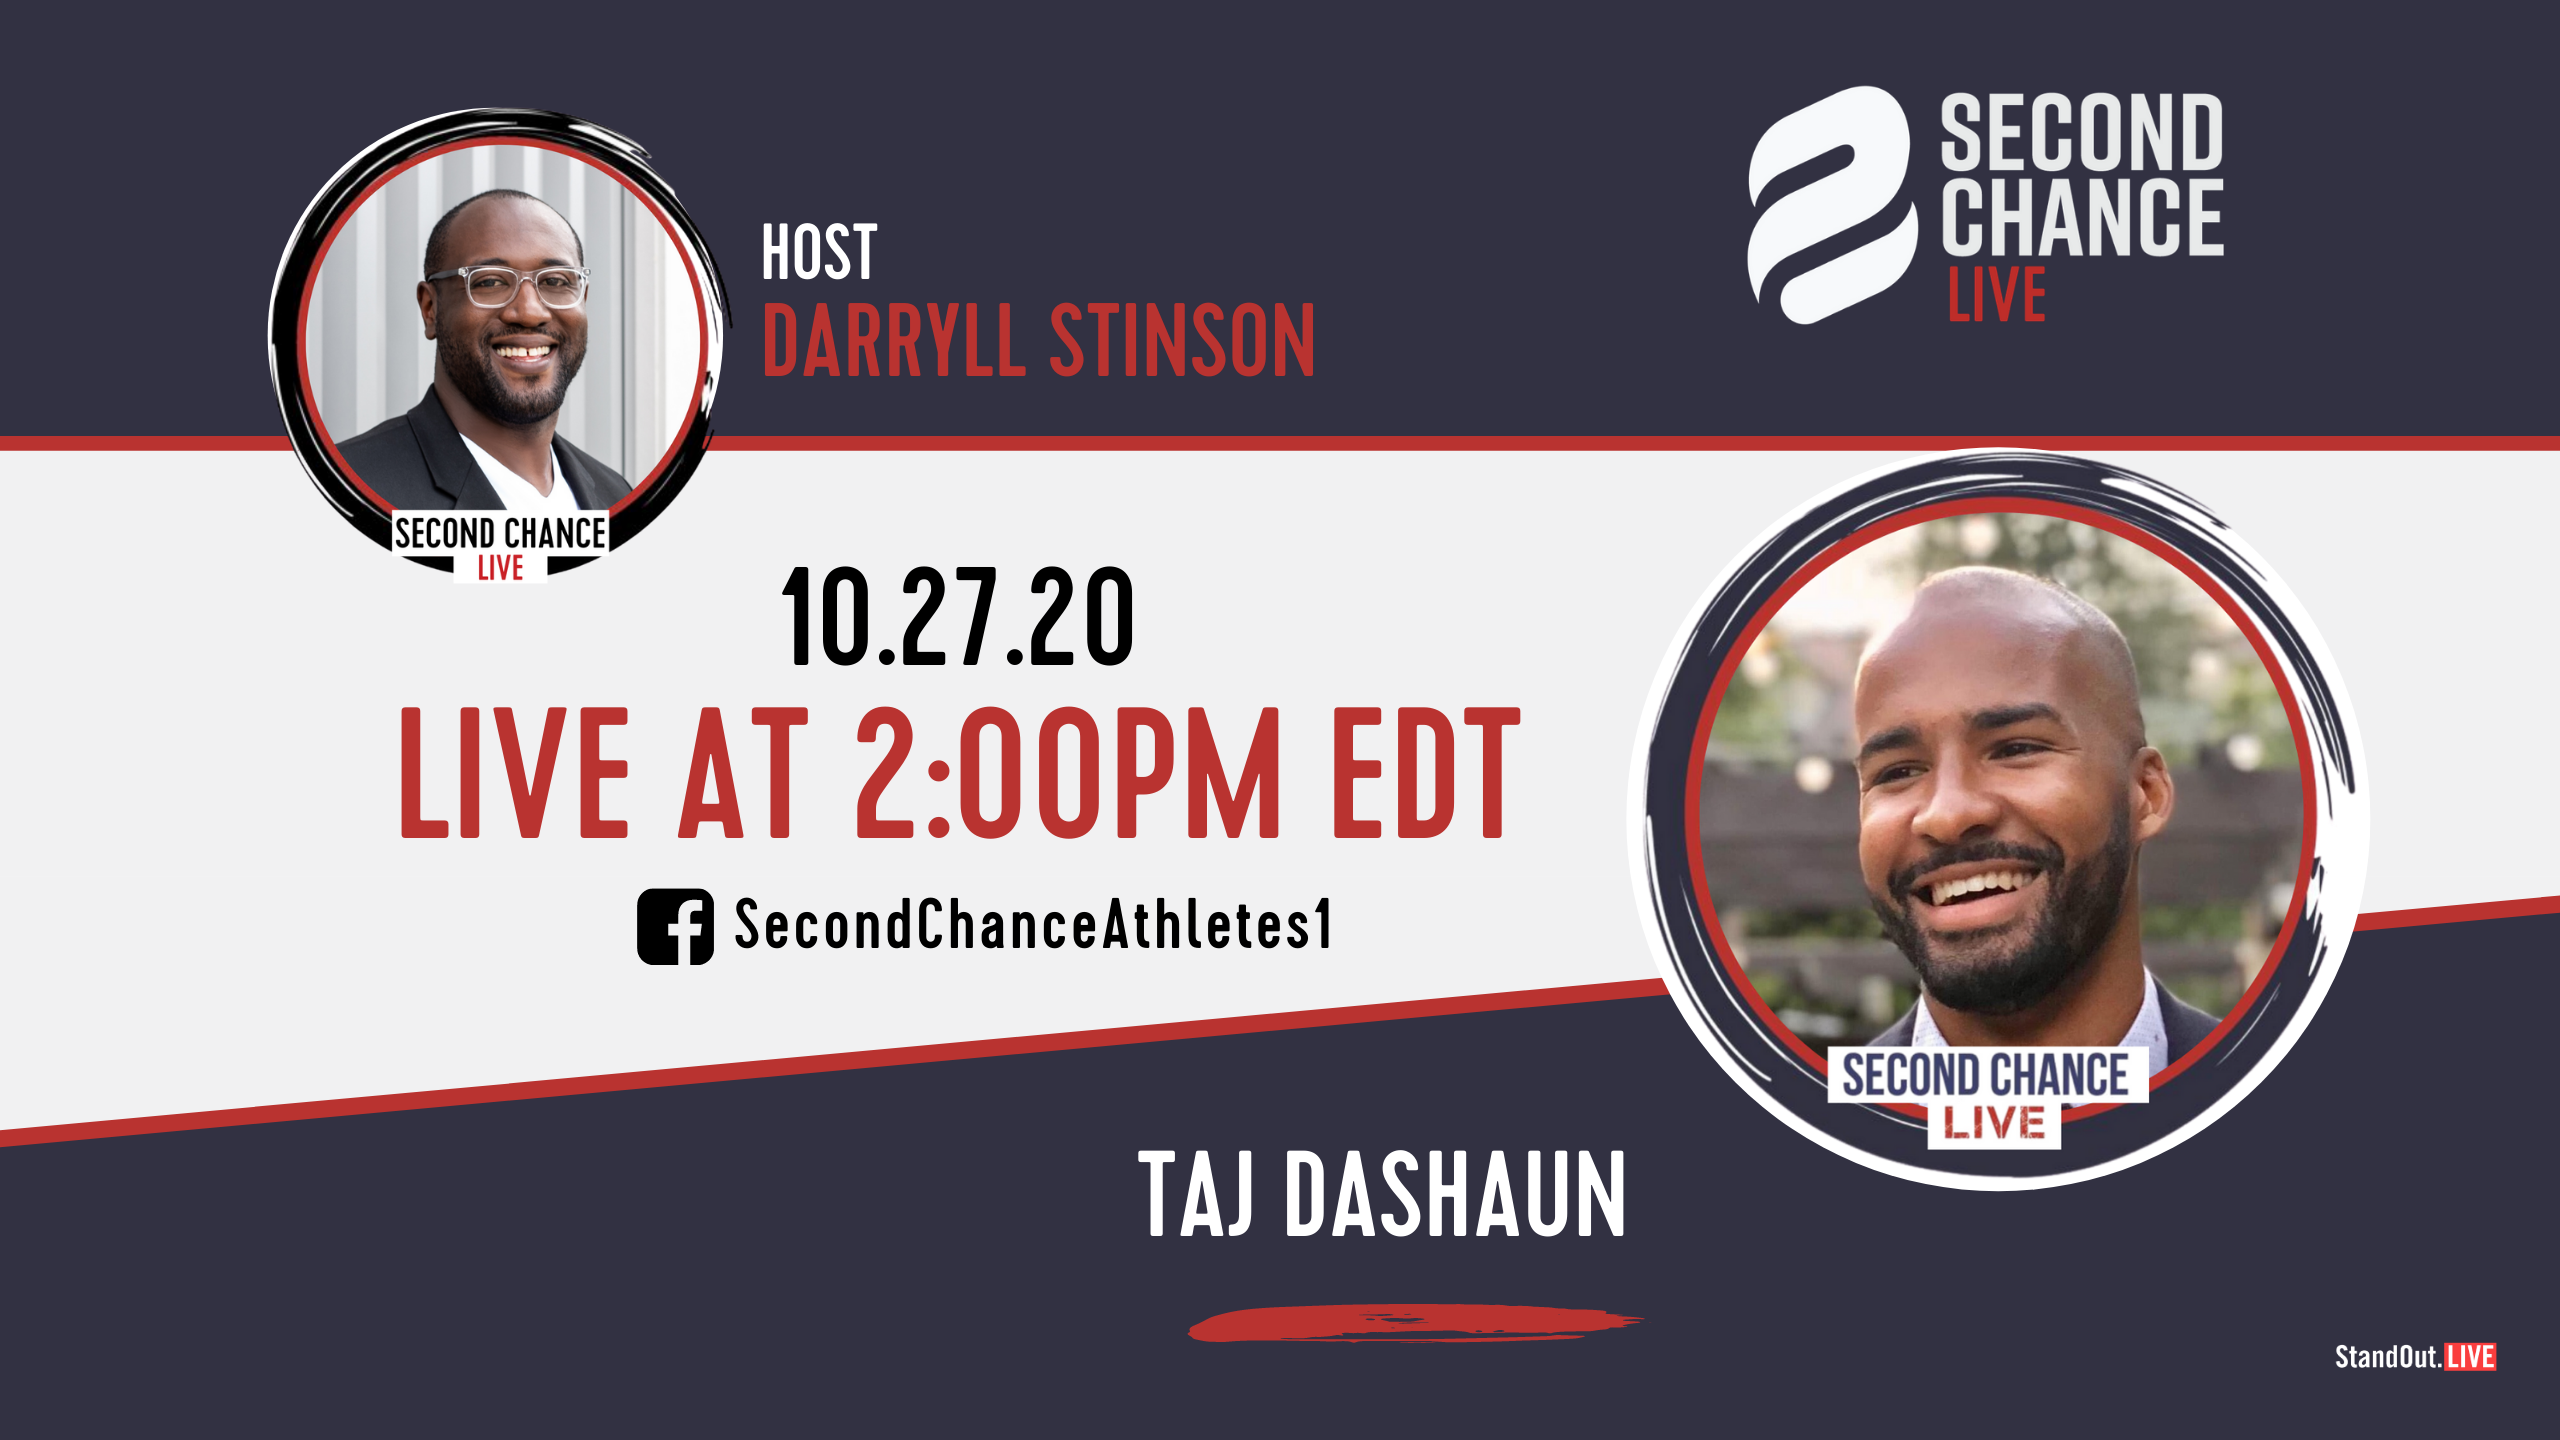 Second Chance LIVE -with Taj Dashaun